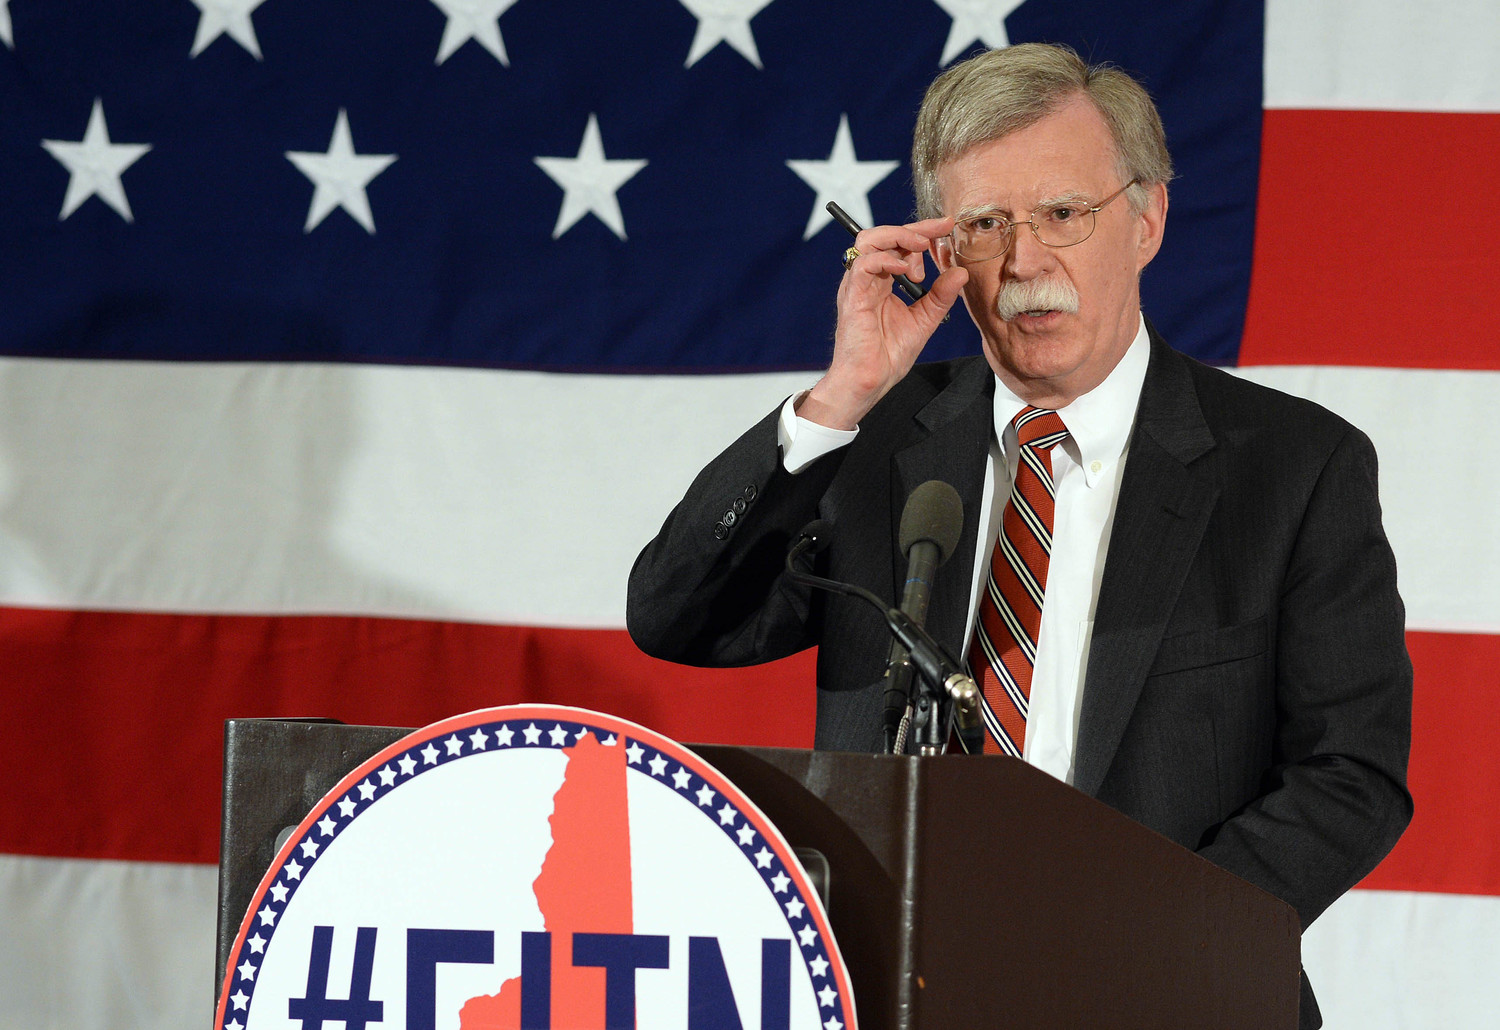 John Bolton at the National Republican Leadership Summit in Nashua, N.H., April 17, 2015.